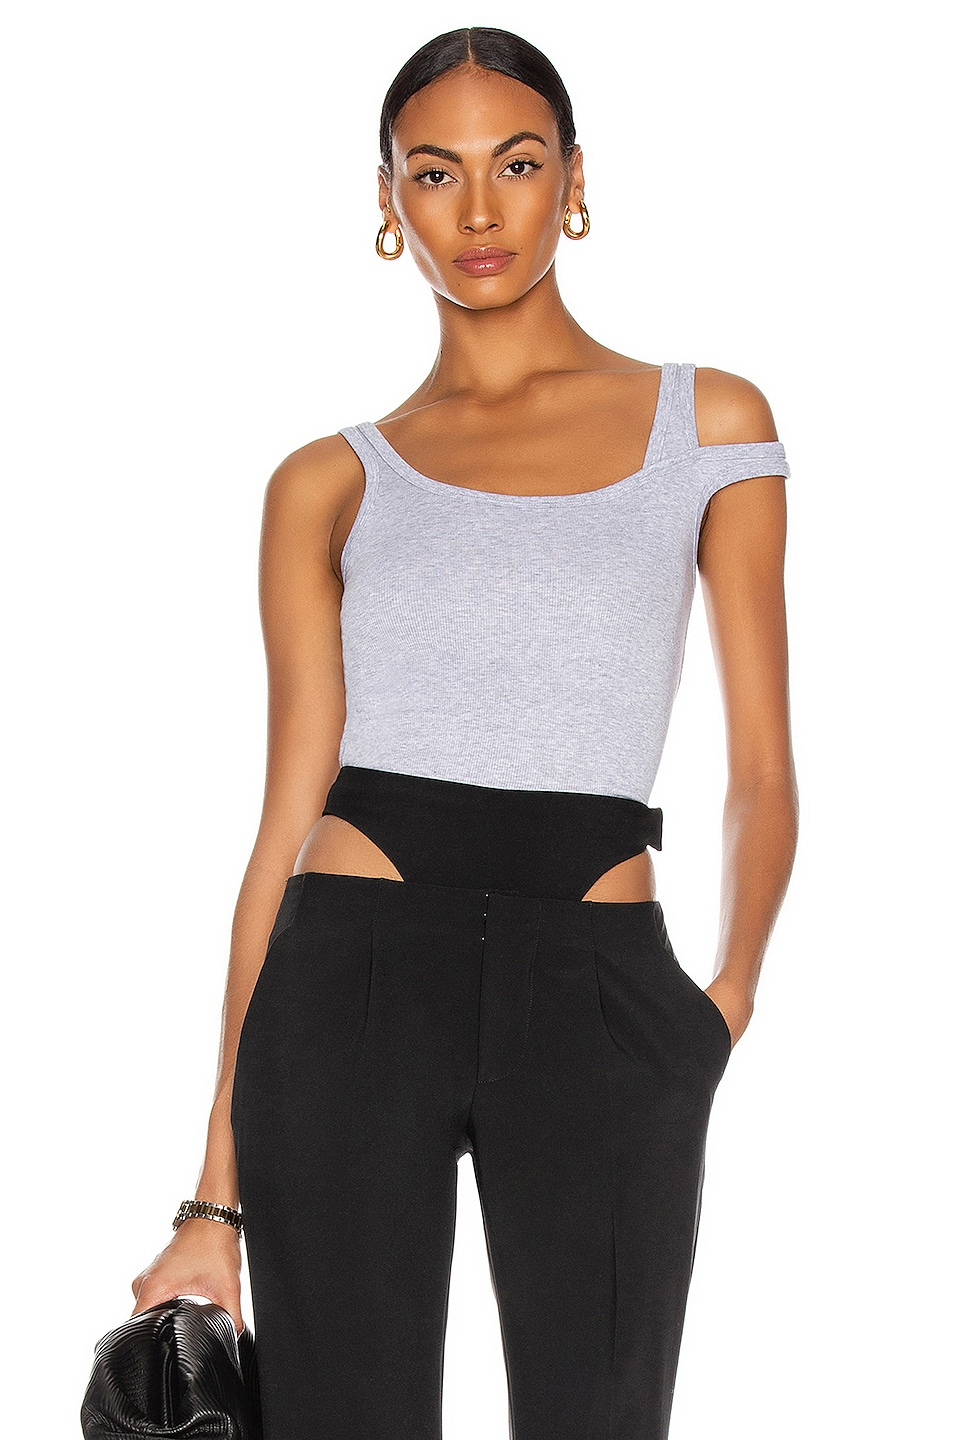 Image 1 of KENDRA DUPLANTIER Lucia Top in Heather Grey